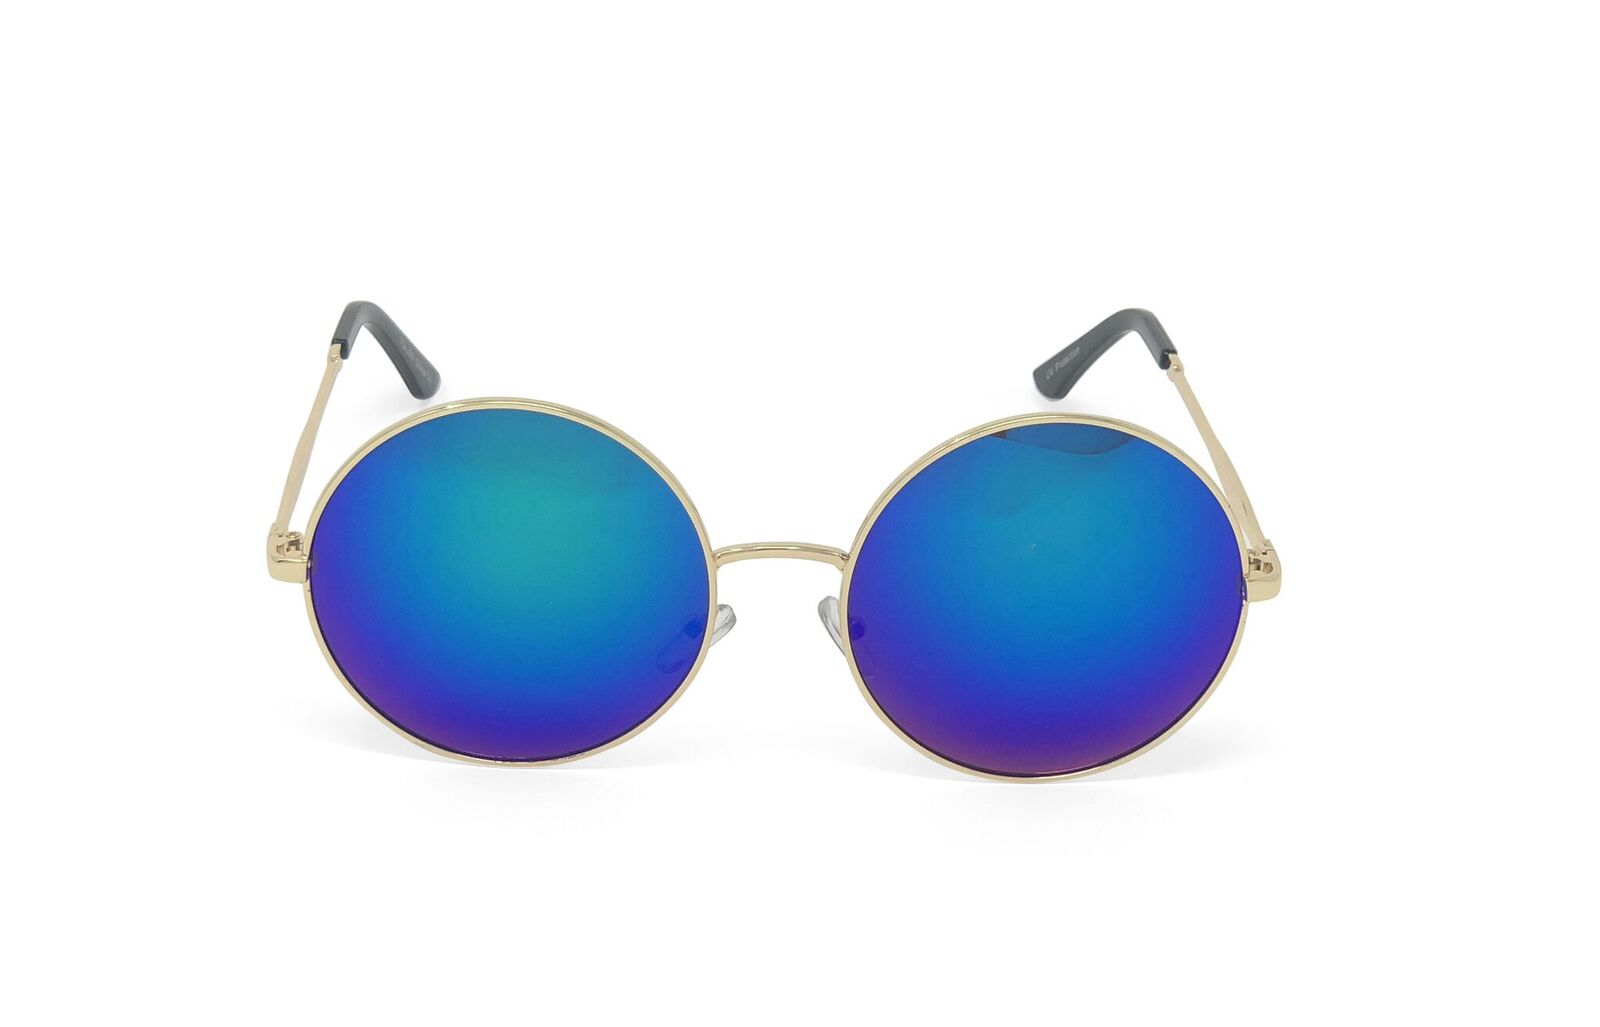 Round Large Circular Colored Mirrored Sunglasses